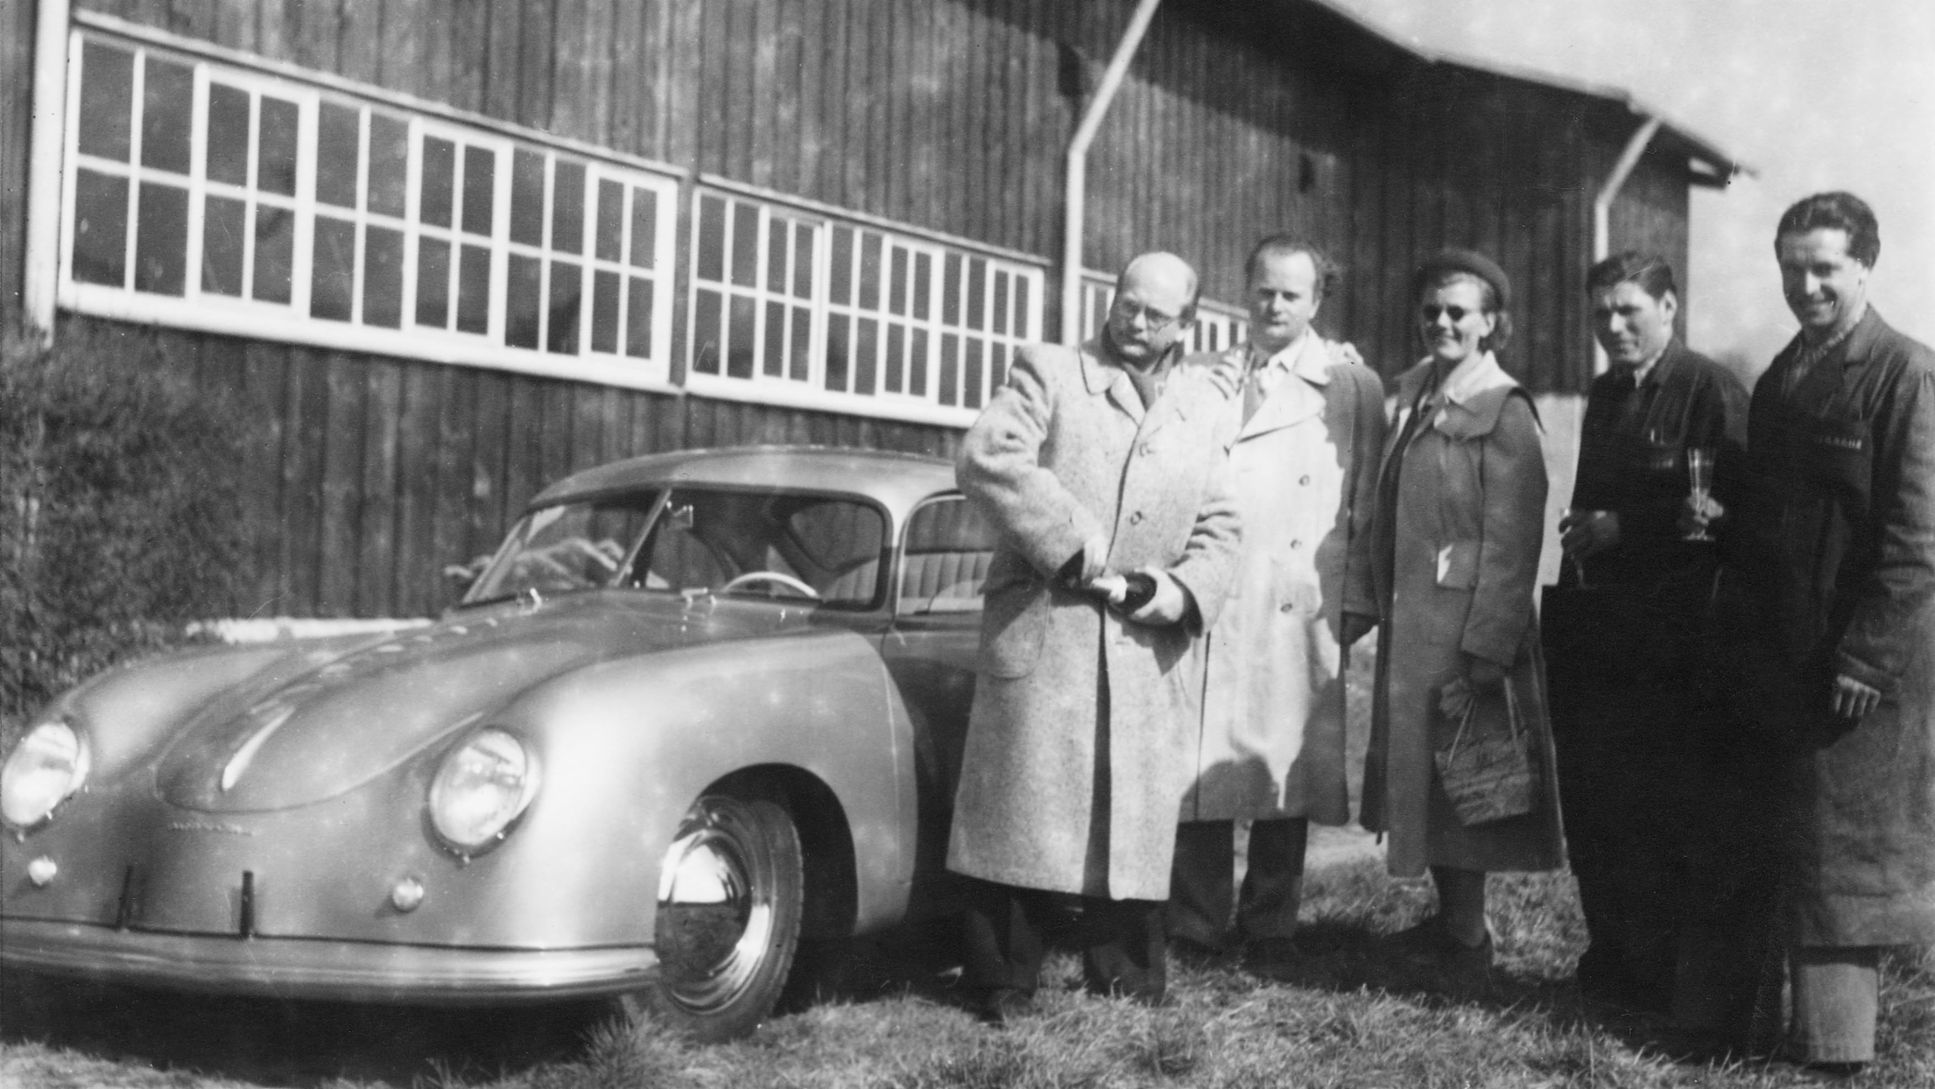 Handover of one of the first 356 to Dr Ottomar Domnick, 1950, Porsche AG